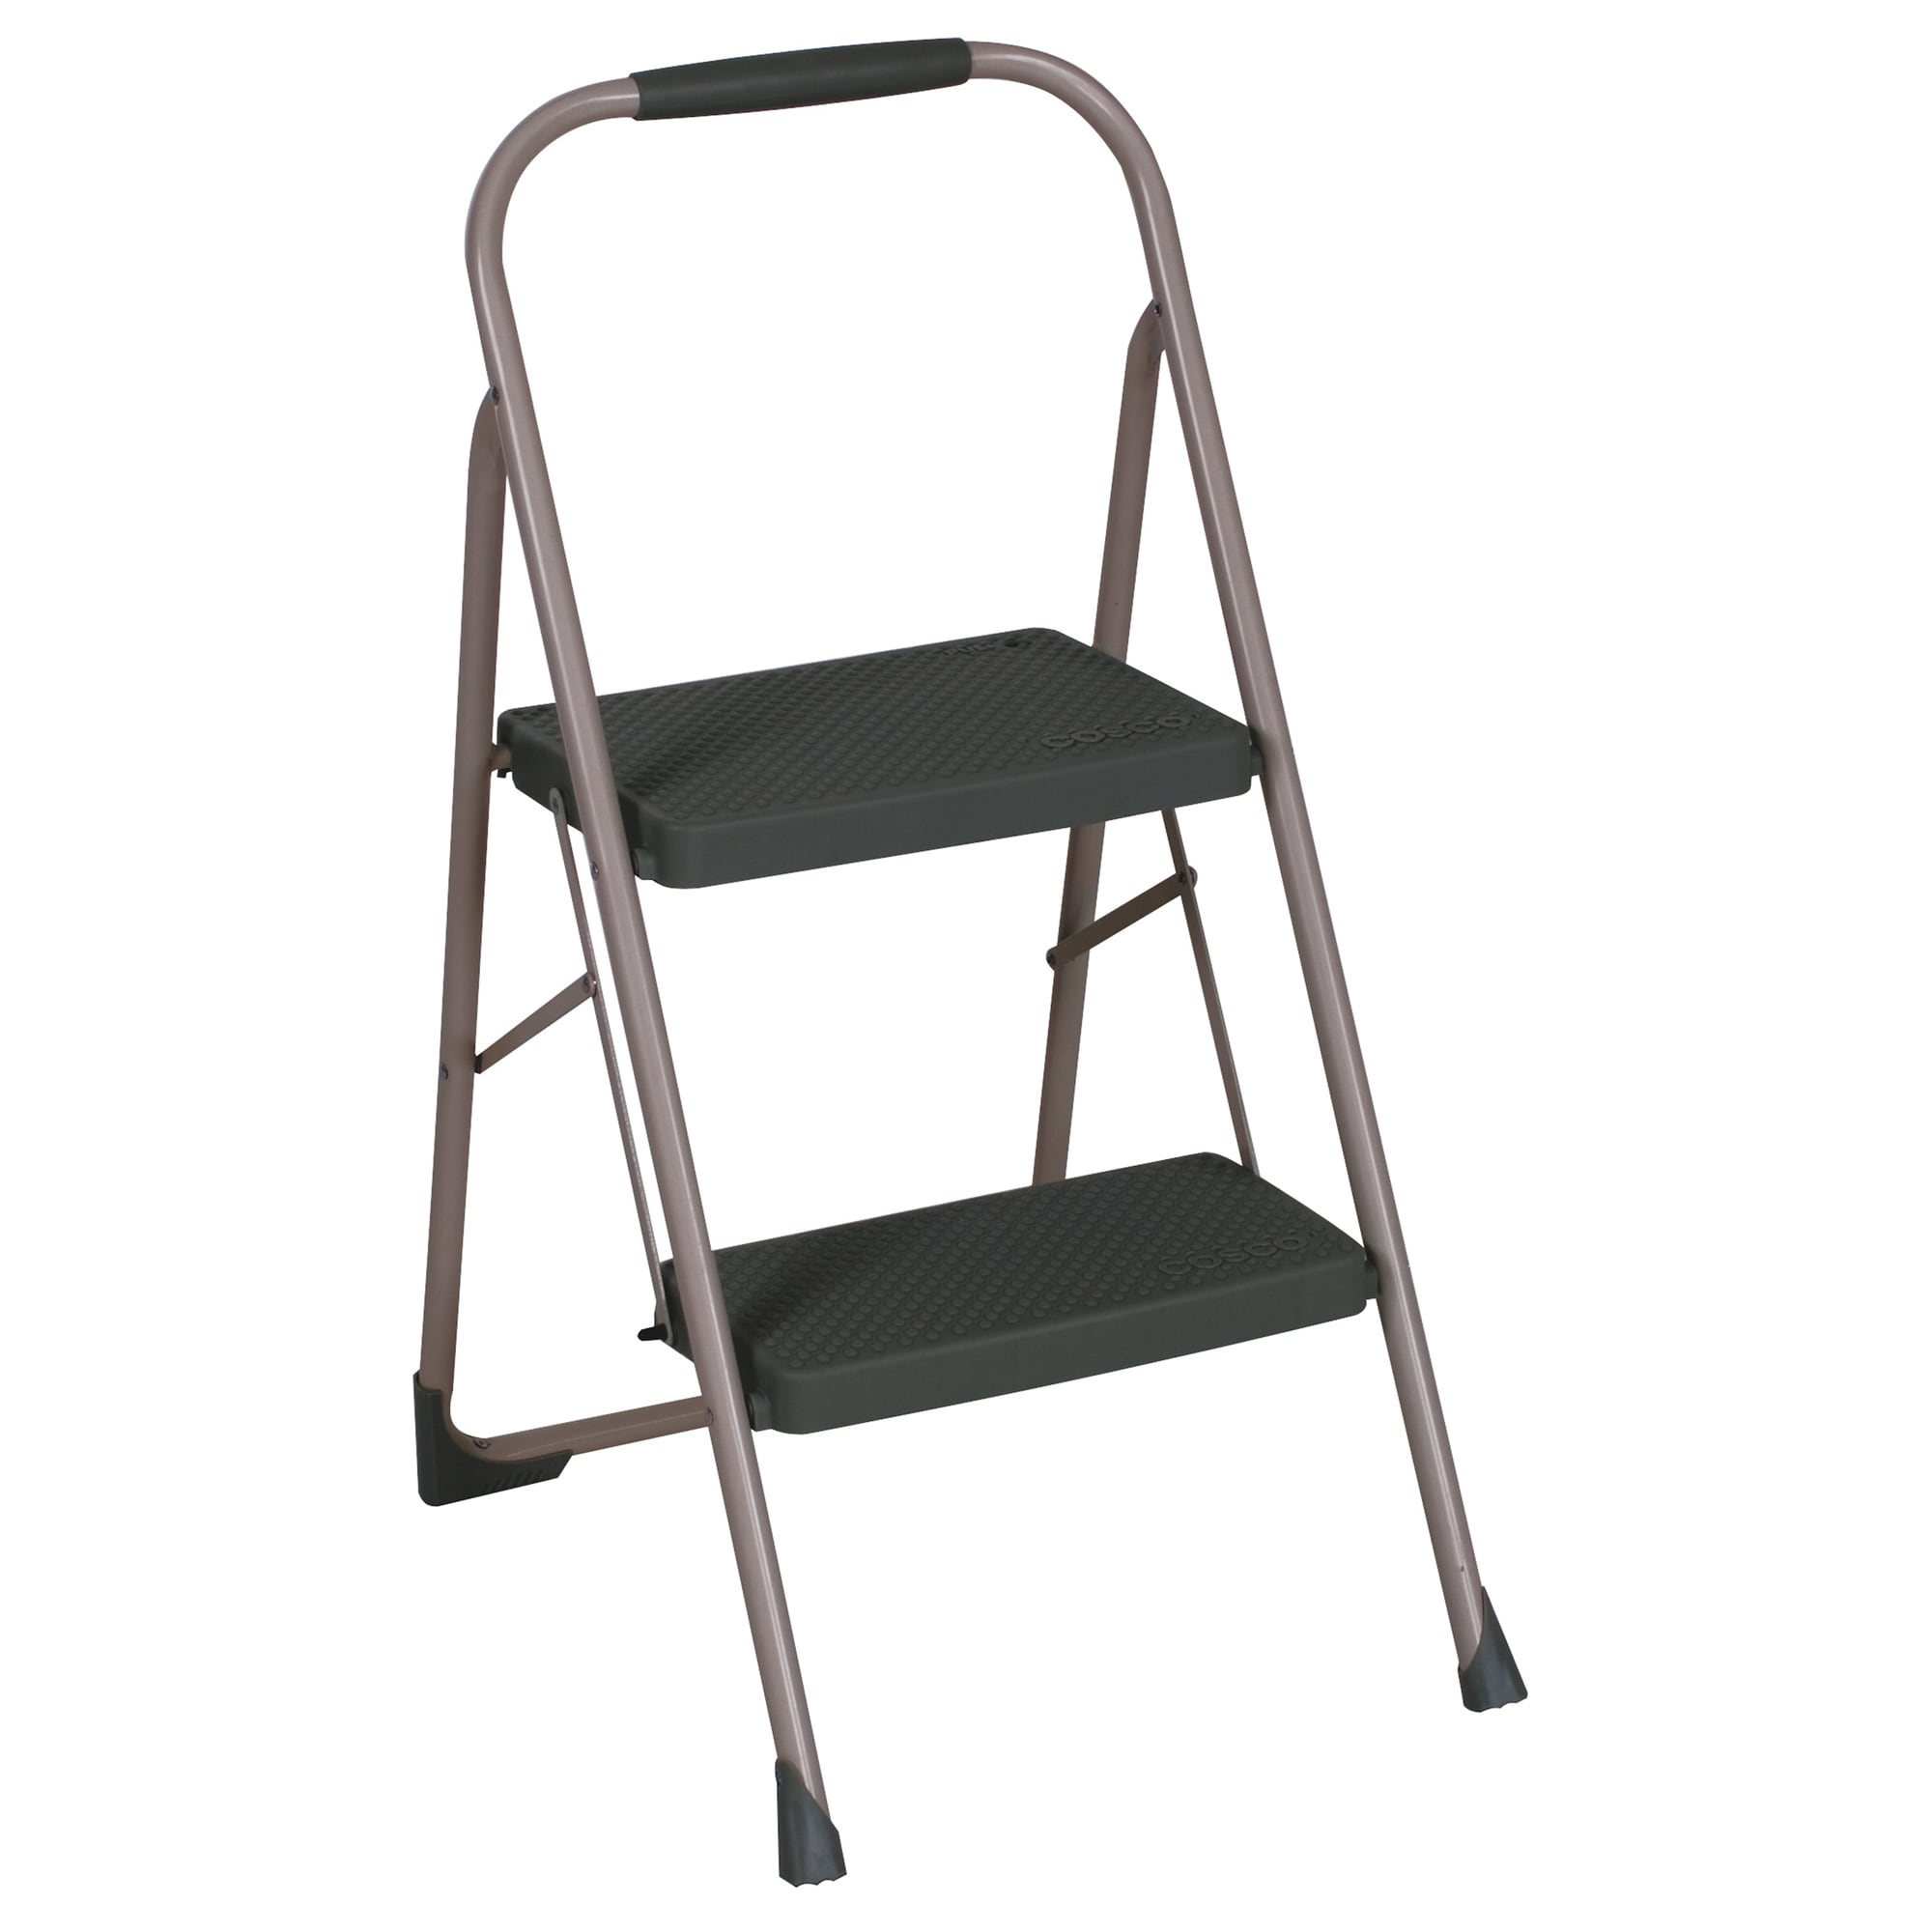 Cosco Two Step Big Step Folding Step Stool Overstock